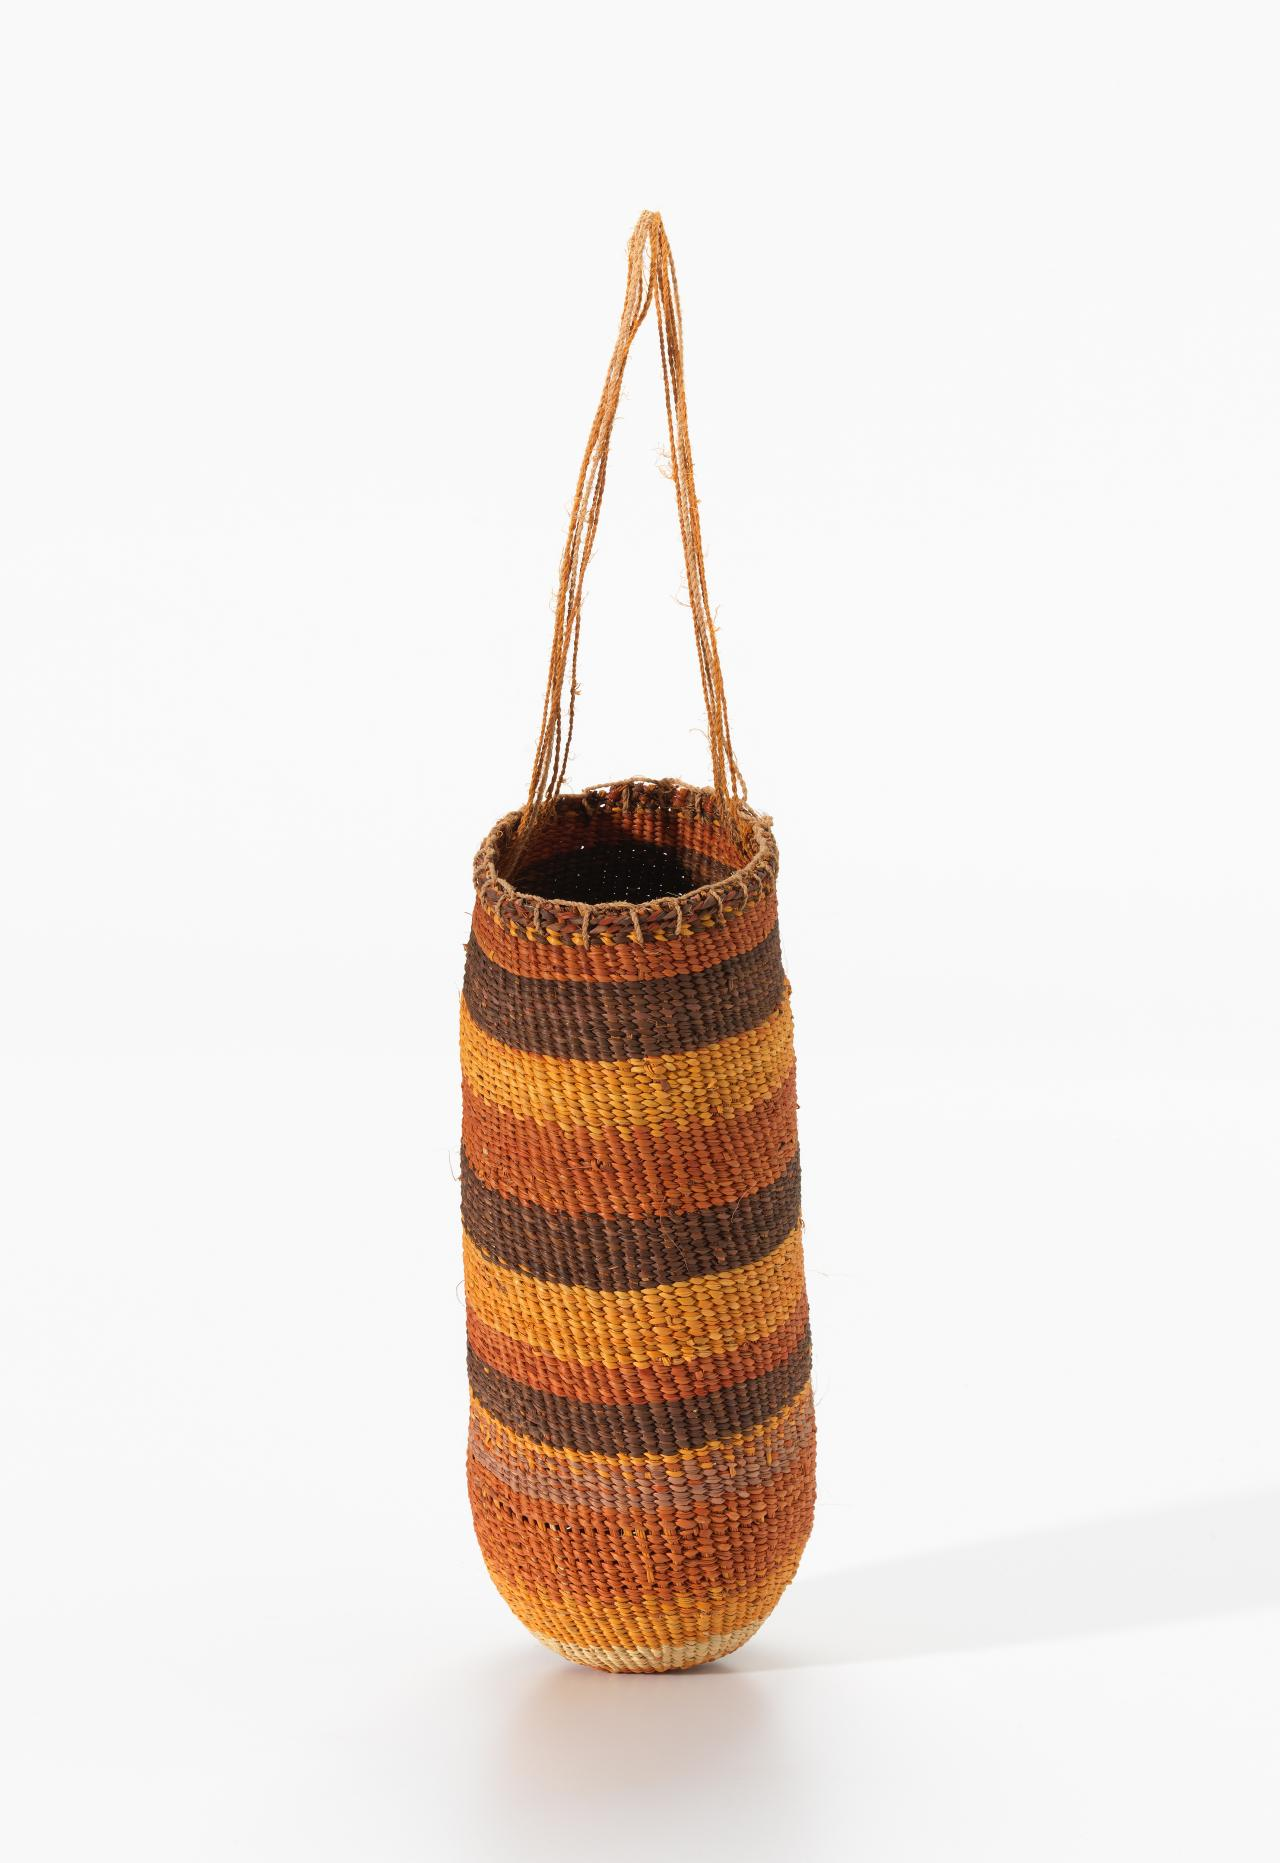 Bulpu (Conical basket)